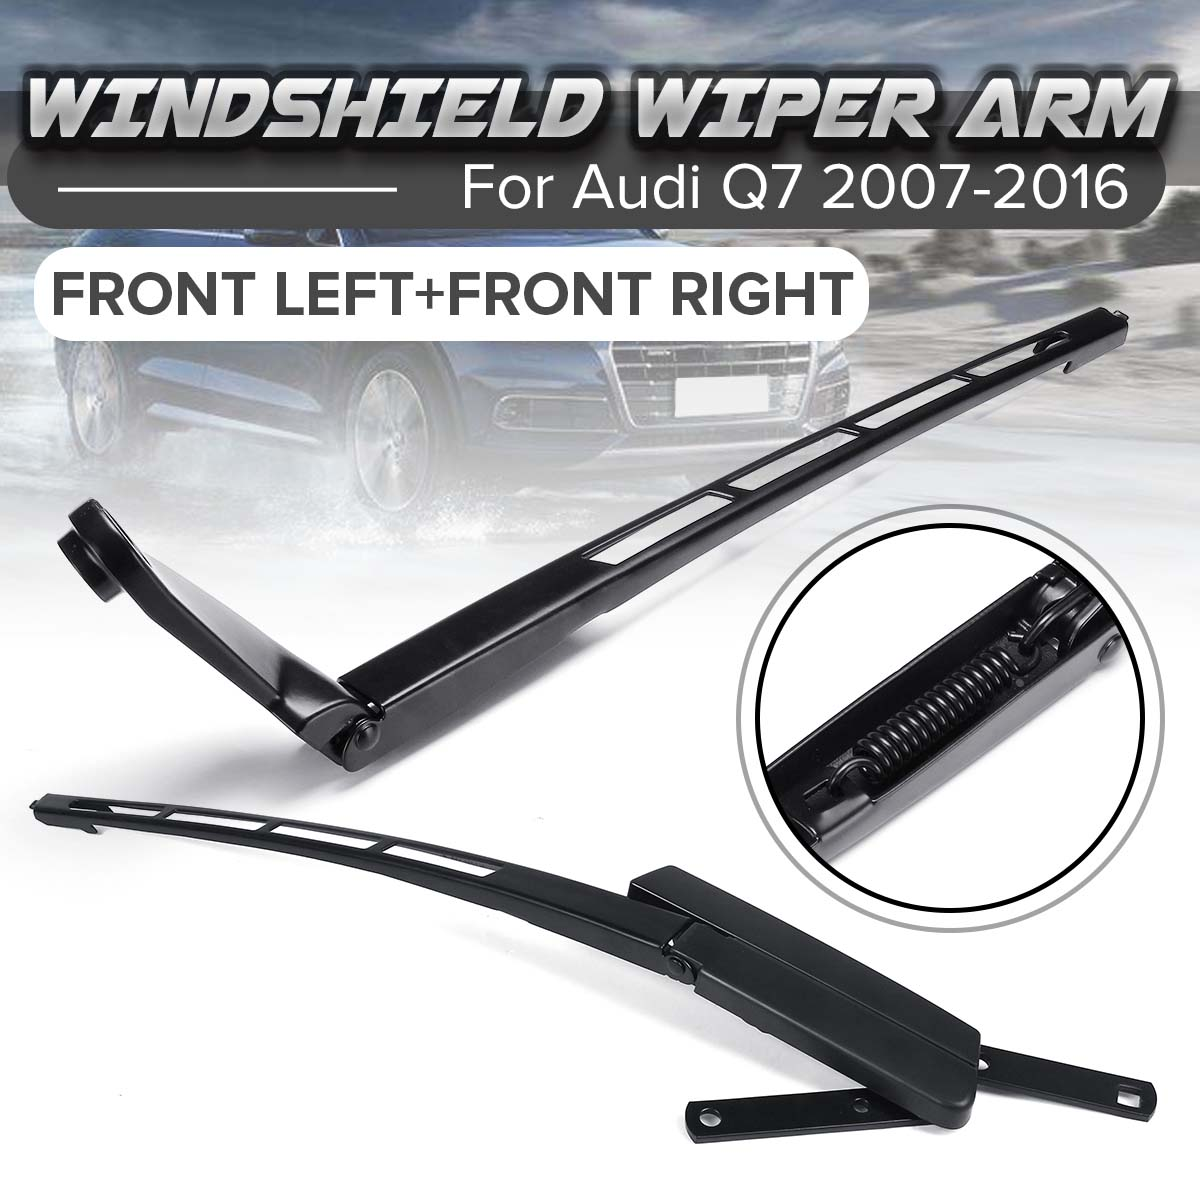 Car Replacement Parts Front Left /Right Driver Side Windshield Wiper Arm For Audi Q7 LHD 2007-2016 4L1955407A /4L1955408B